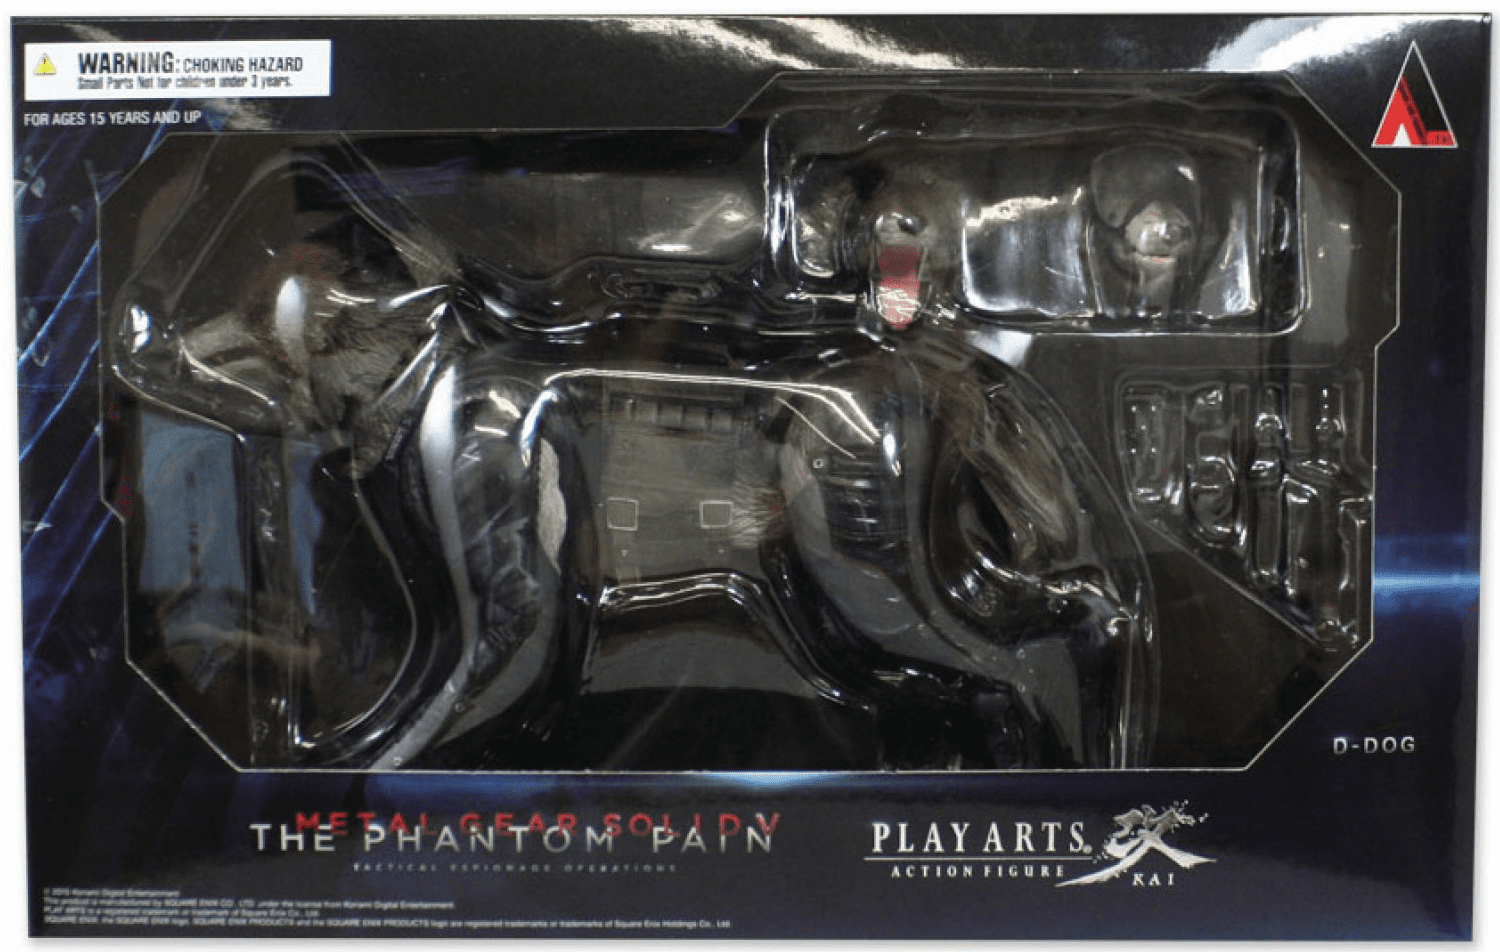 Square Enix Play Arts Kai Metal Gear Solid V D-Dog Figure